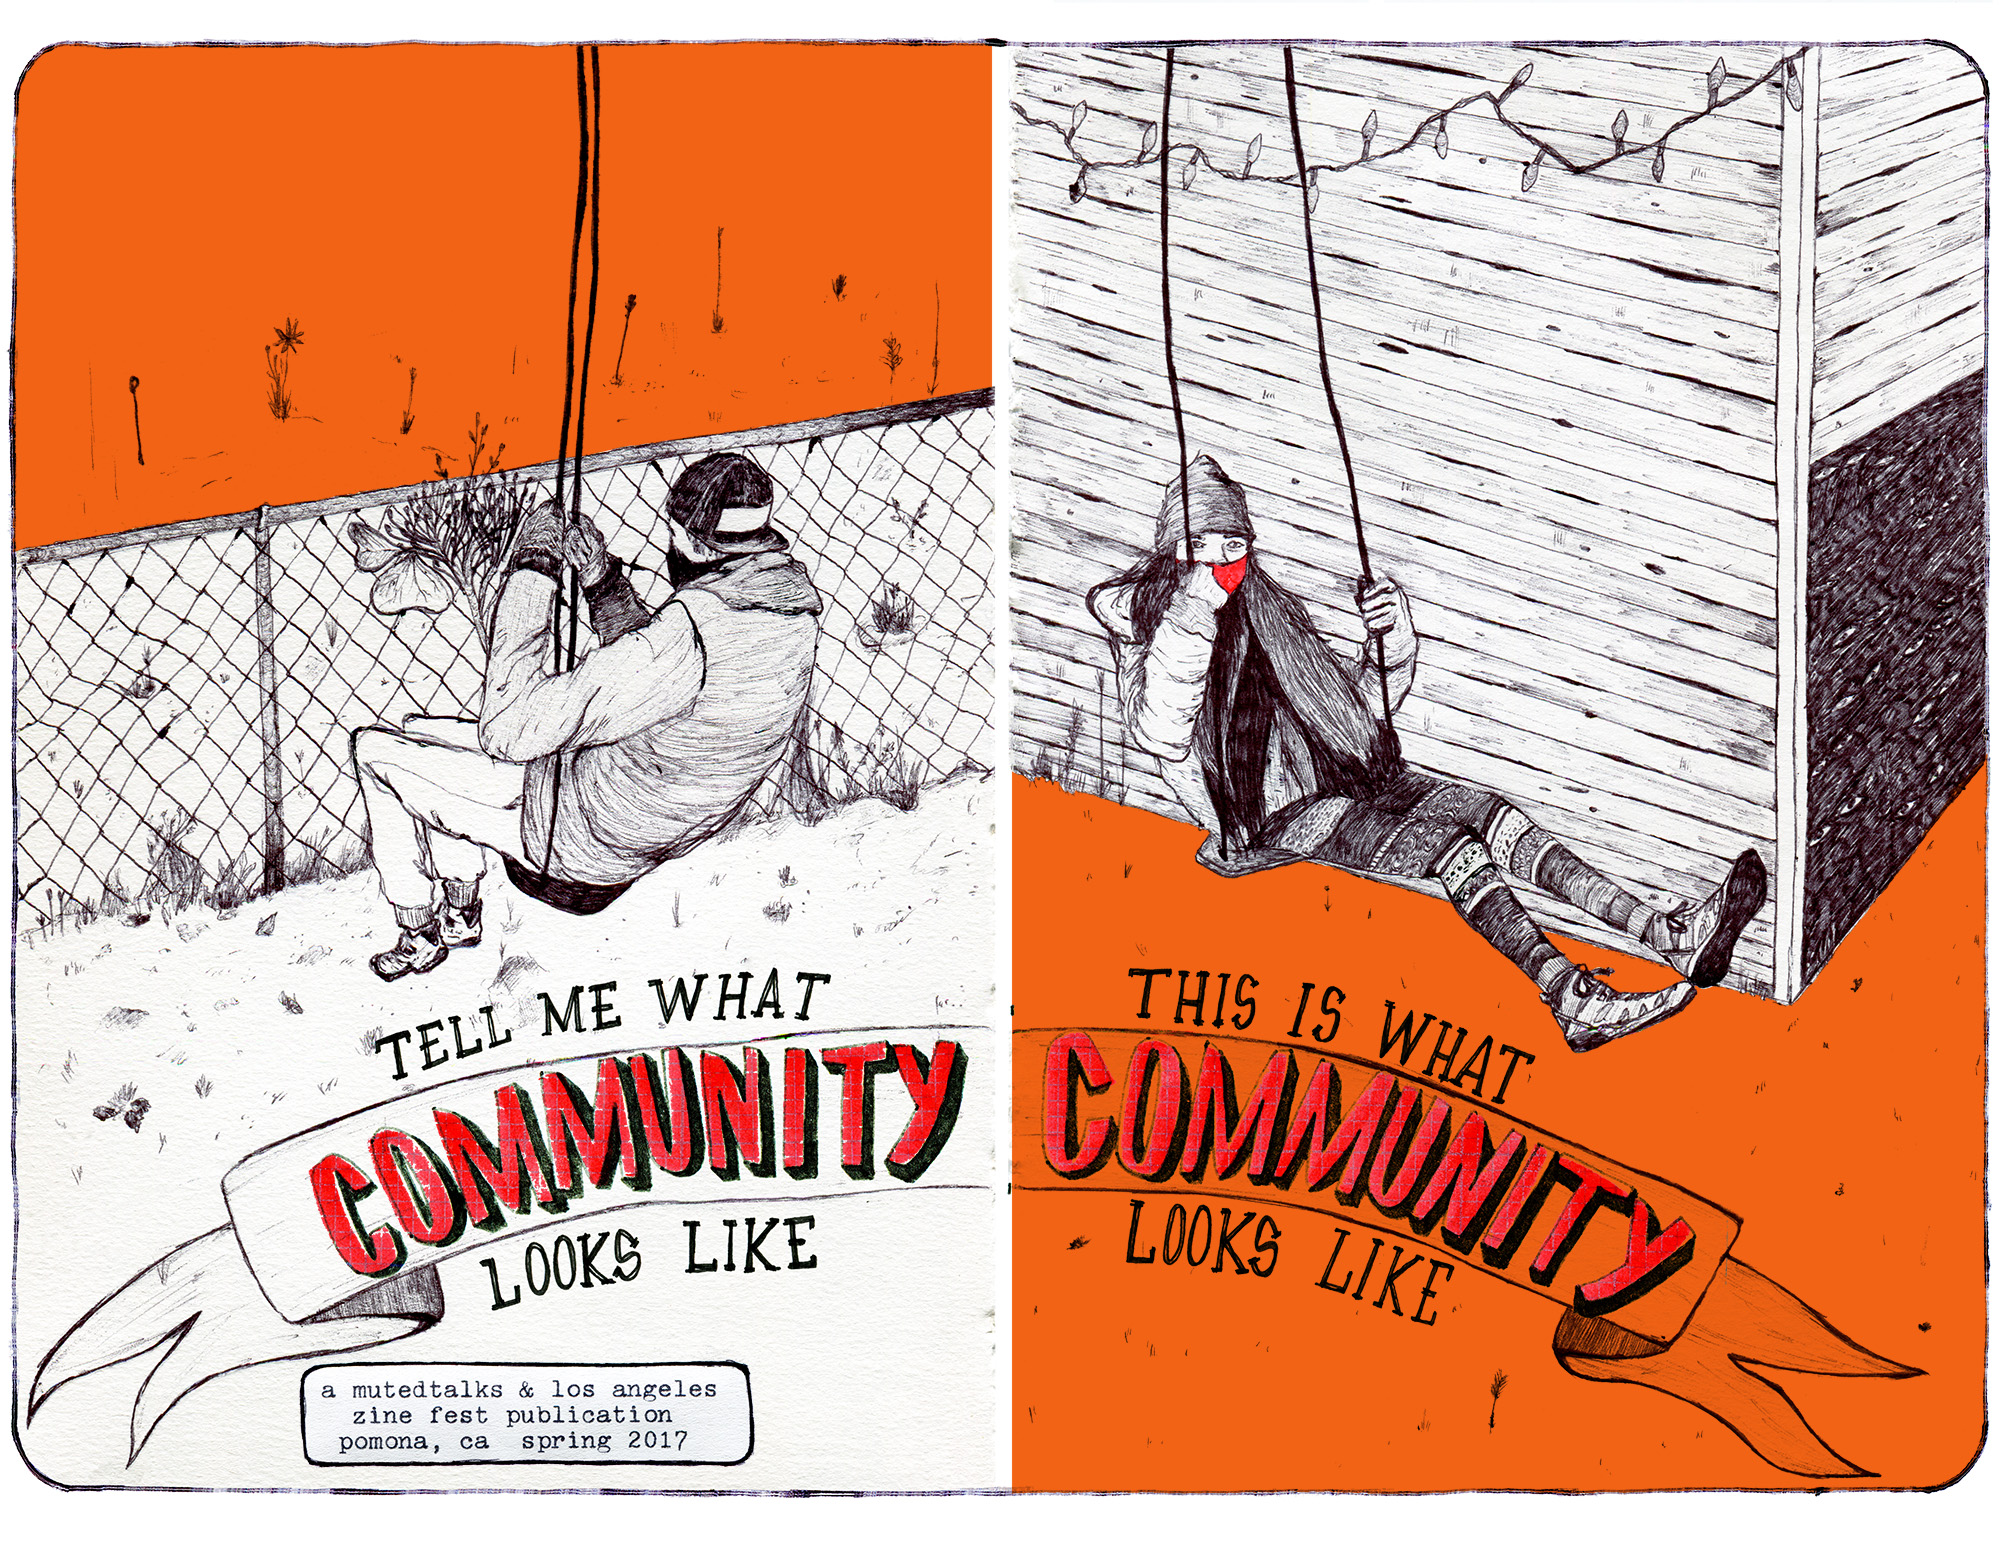 This is what community looks like  was the official zine of L.A. Z  ine Fest 2017. Courtesy of Tony Hoang.